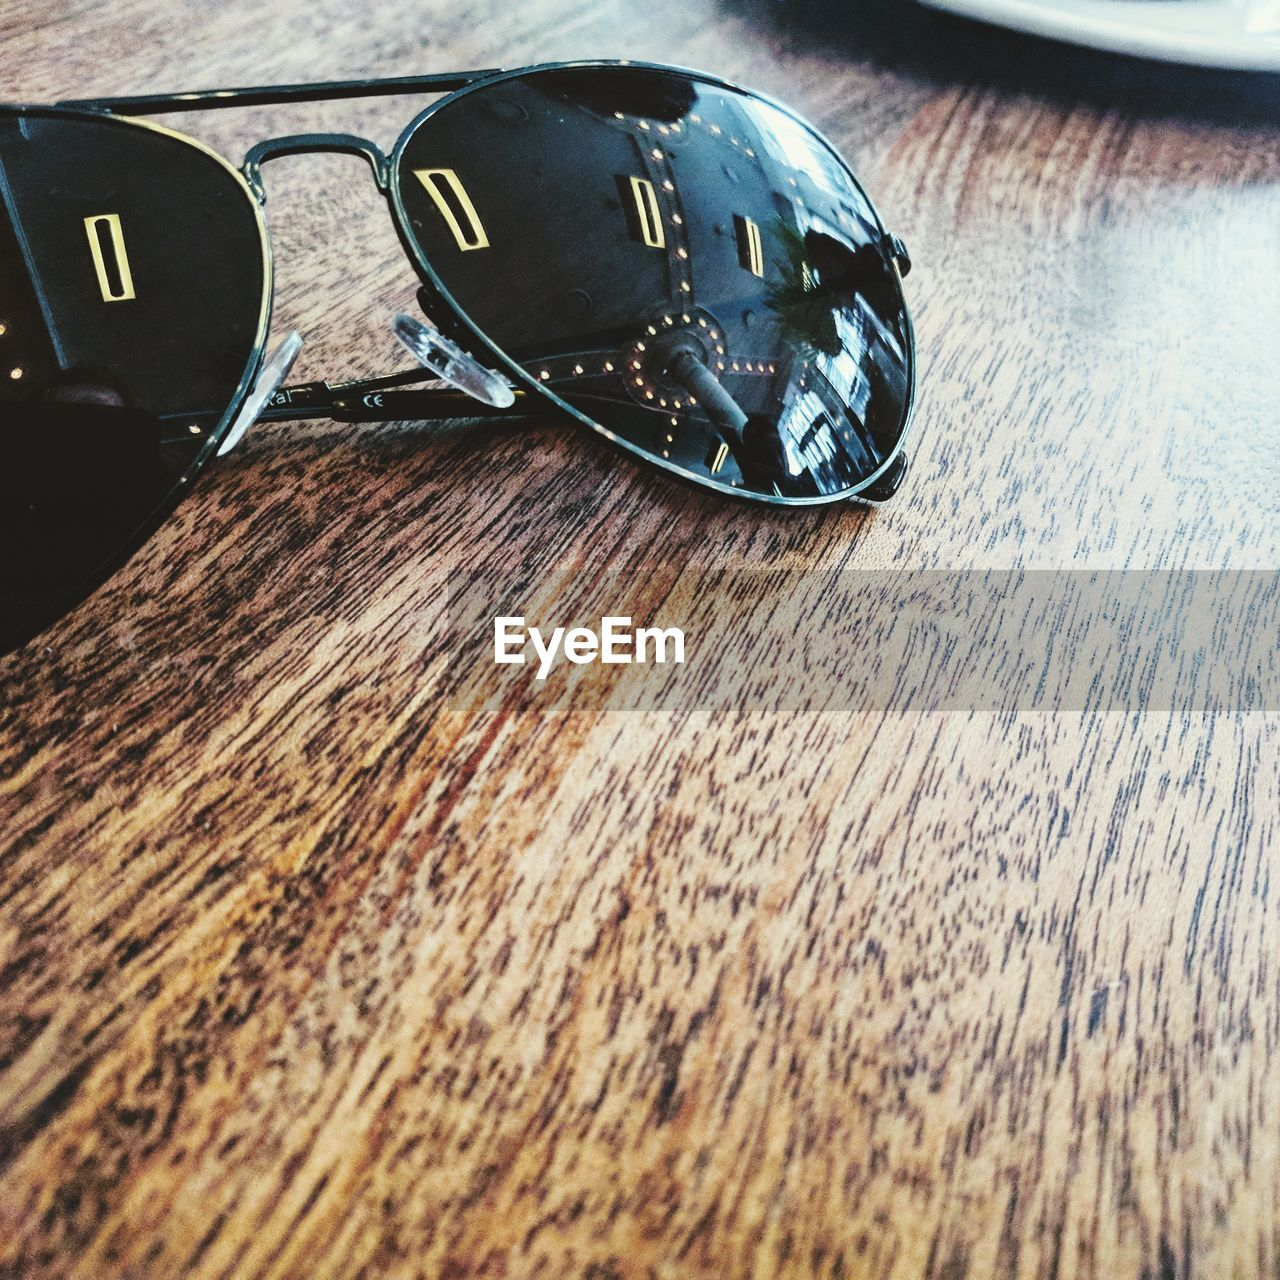 wood - material, table, close-up, still life, indoors, no people, glasses, personal accessory, fashion, high angle view, metal, sunglasses, selective focus, day, reflection, security, protection, safety, wood, single object, silver colored